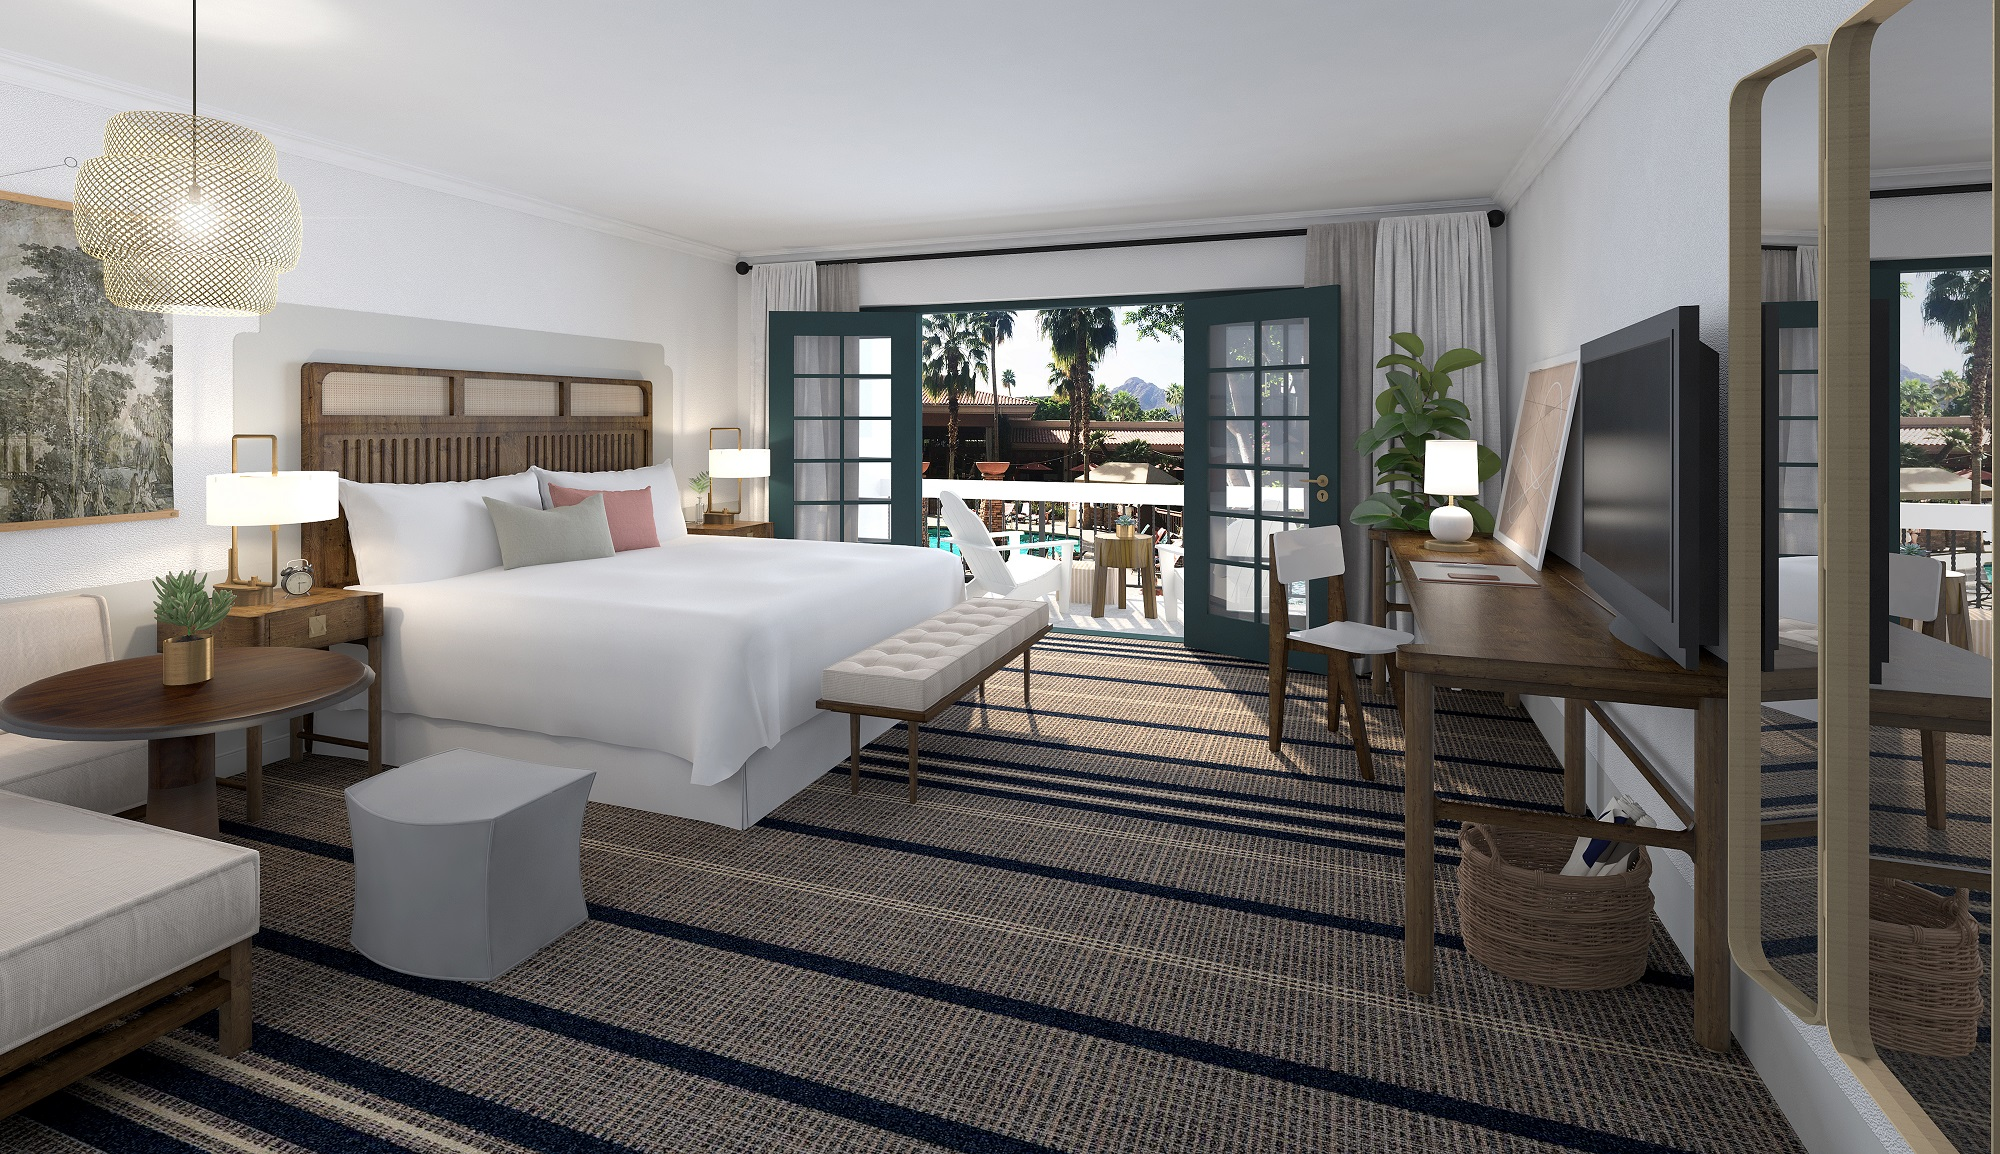 The second phase of the renovation, set for summer 2018, will revamp all 204 guestrooms.